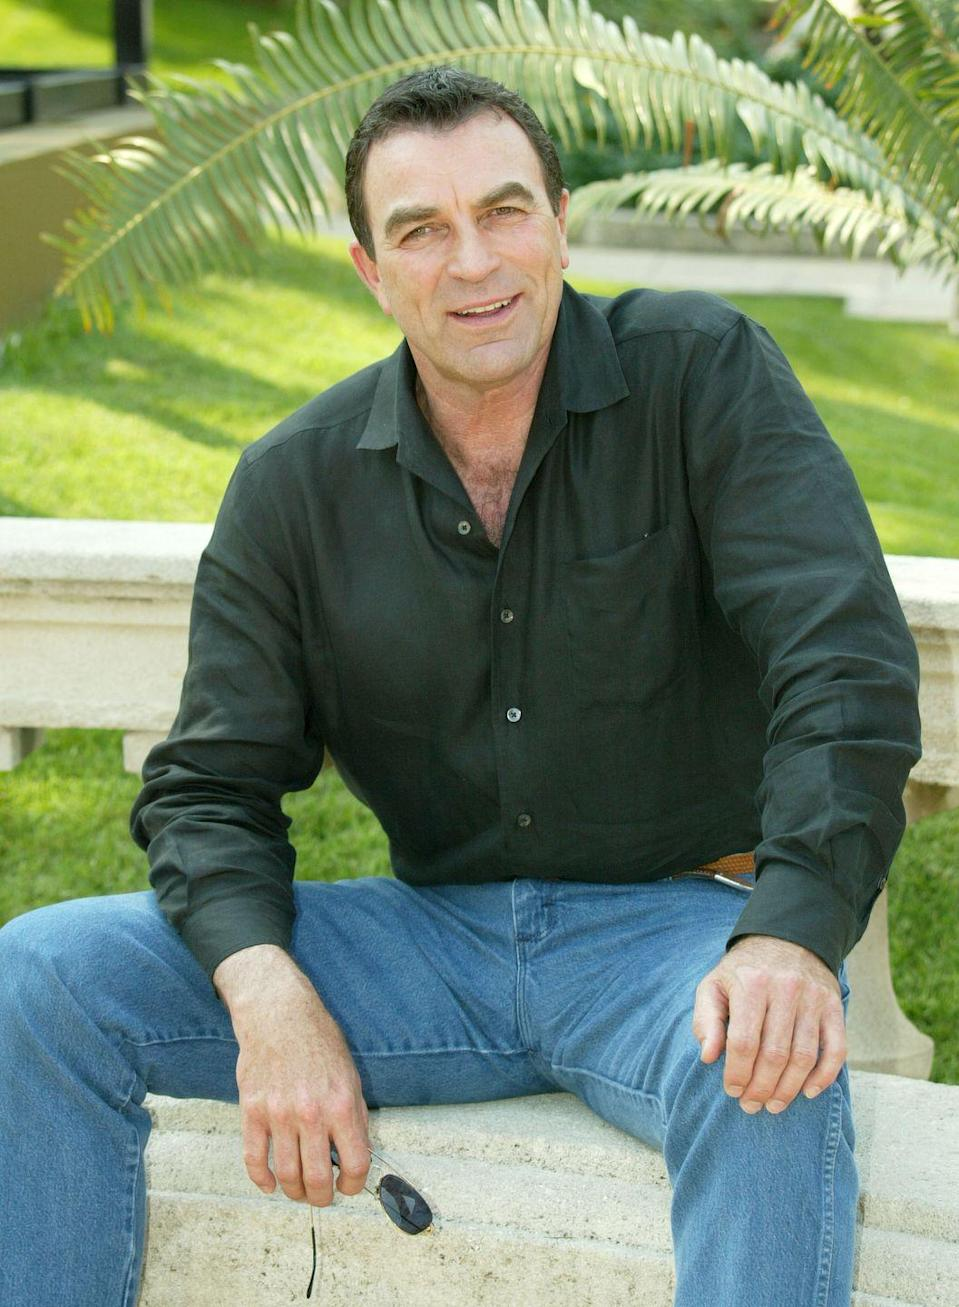 <p>Unrecognizable without a mustache, fans of Selleck might not even realize that's him. </p>